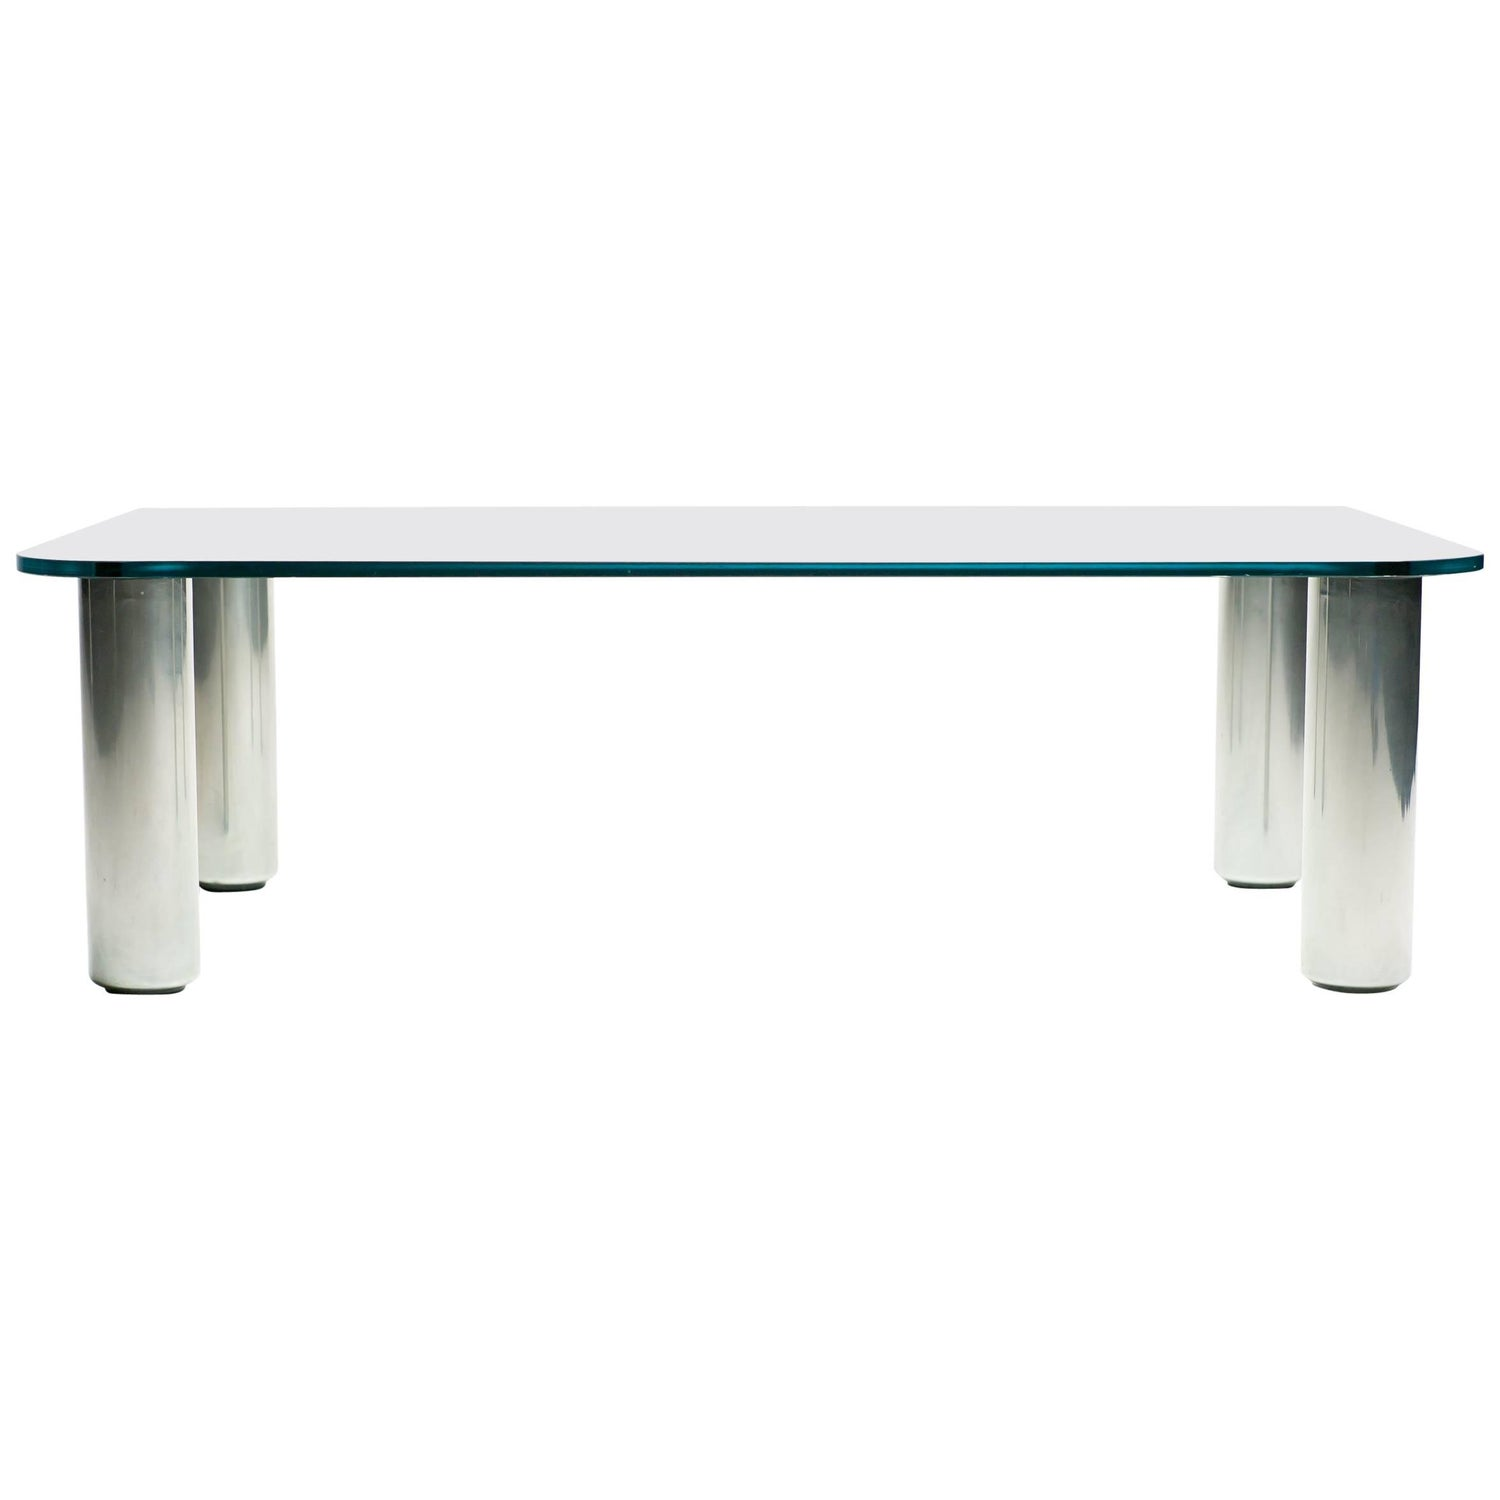 Rudder fin coffee table IN 52 by Isamu Noguchi for Vitra at 1stdibs